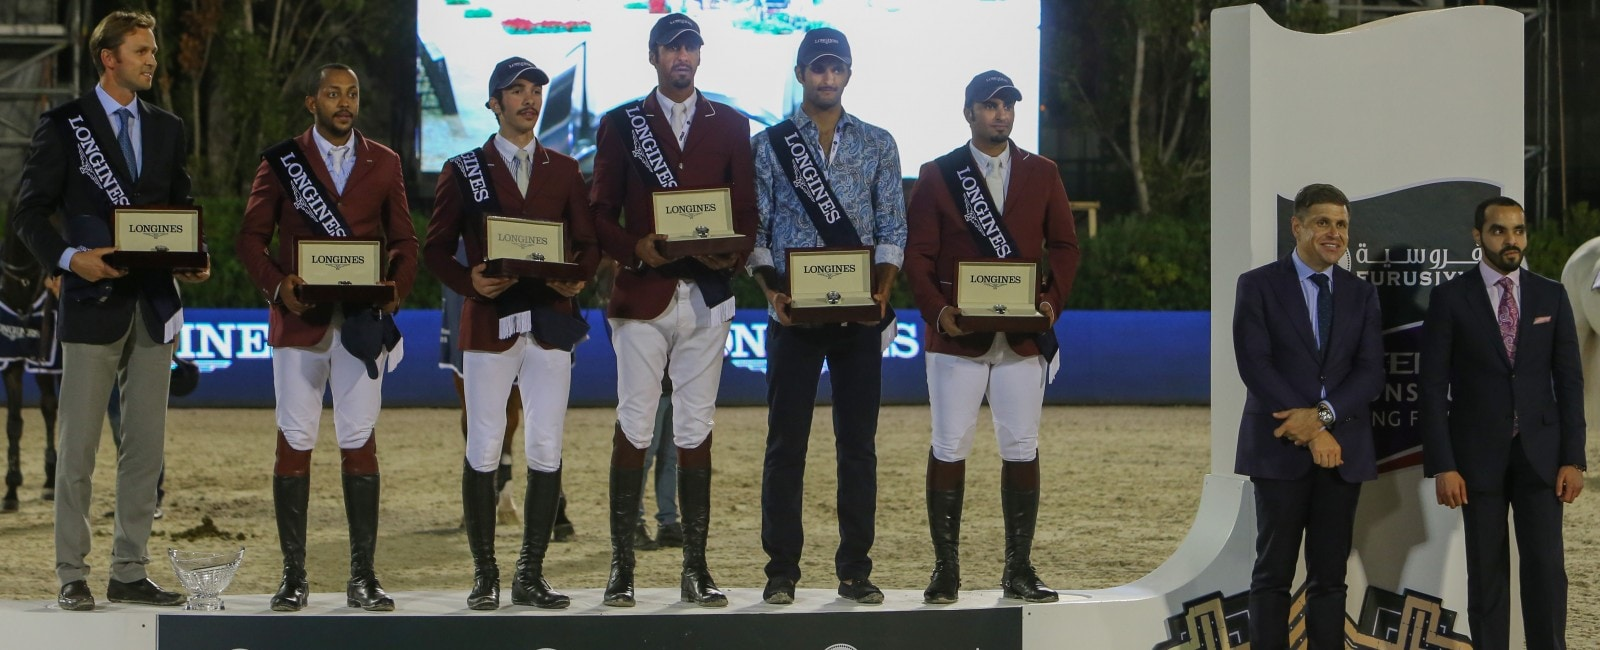 Team Qatar wins the Longines Challenge Cup at the CSIO Barcelona 2015